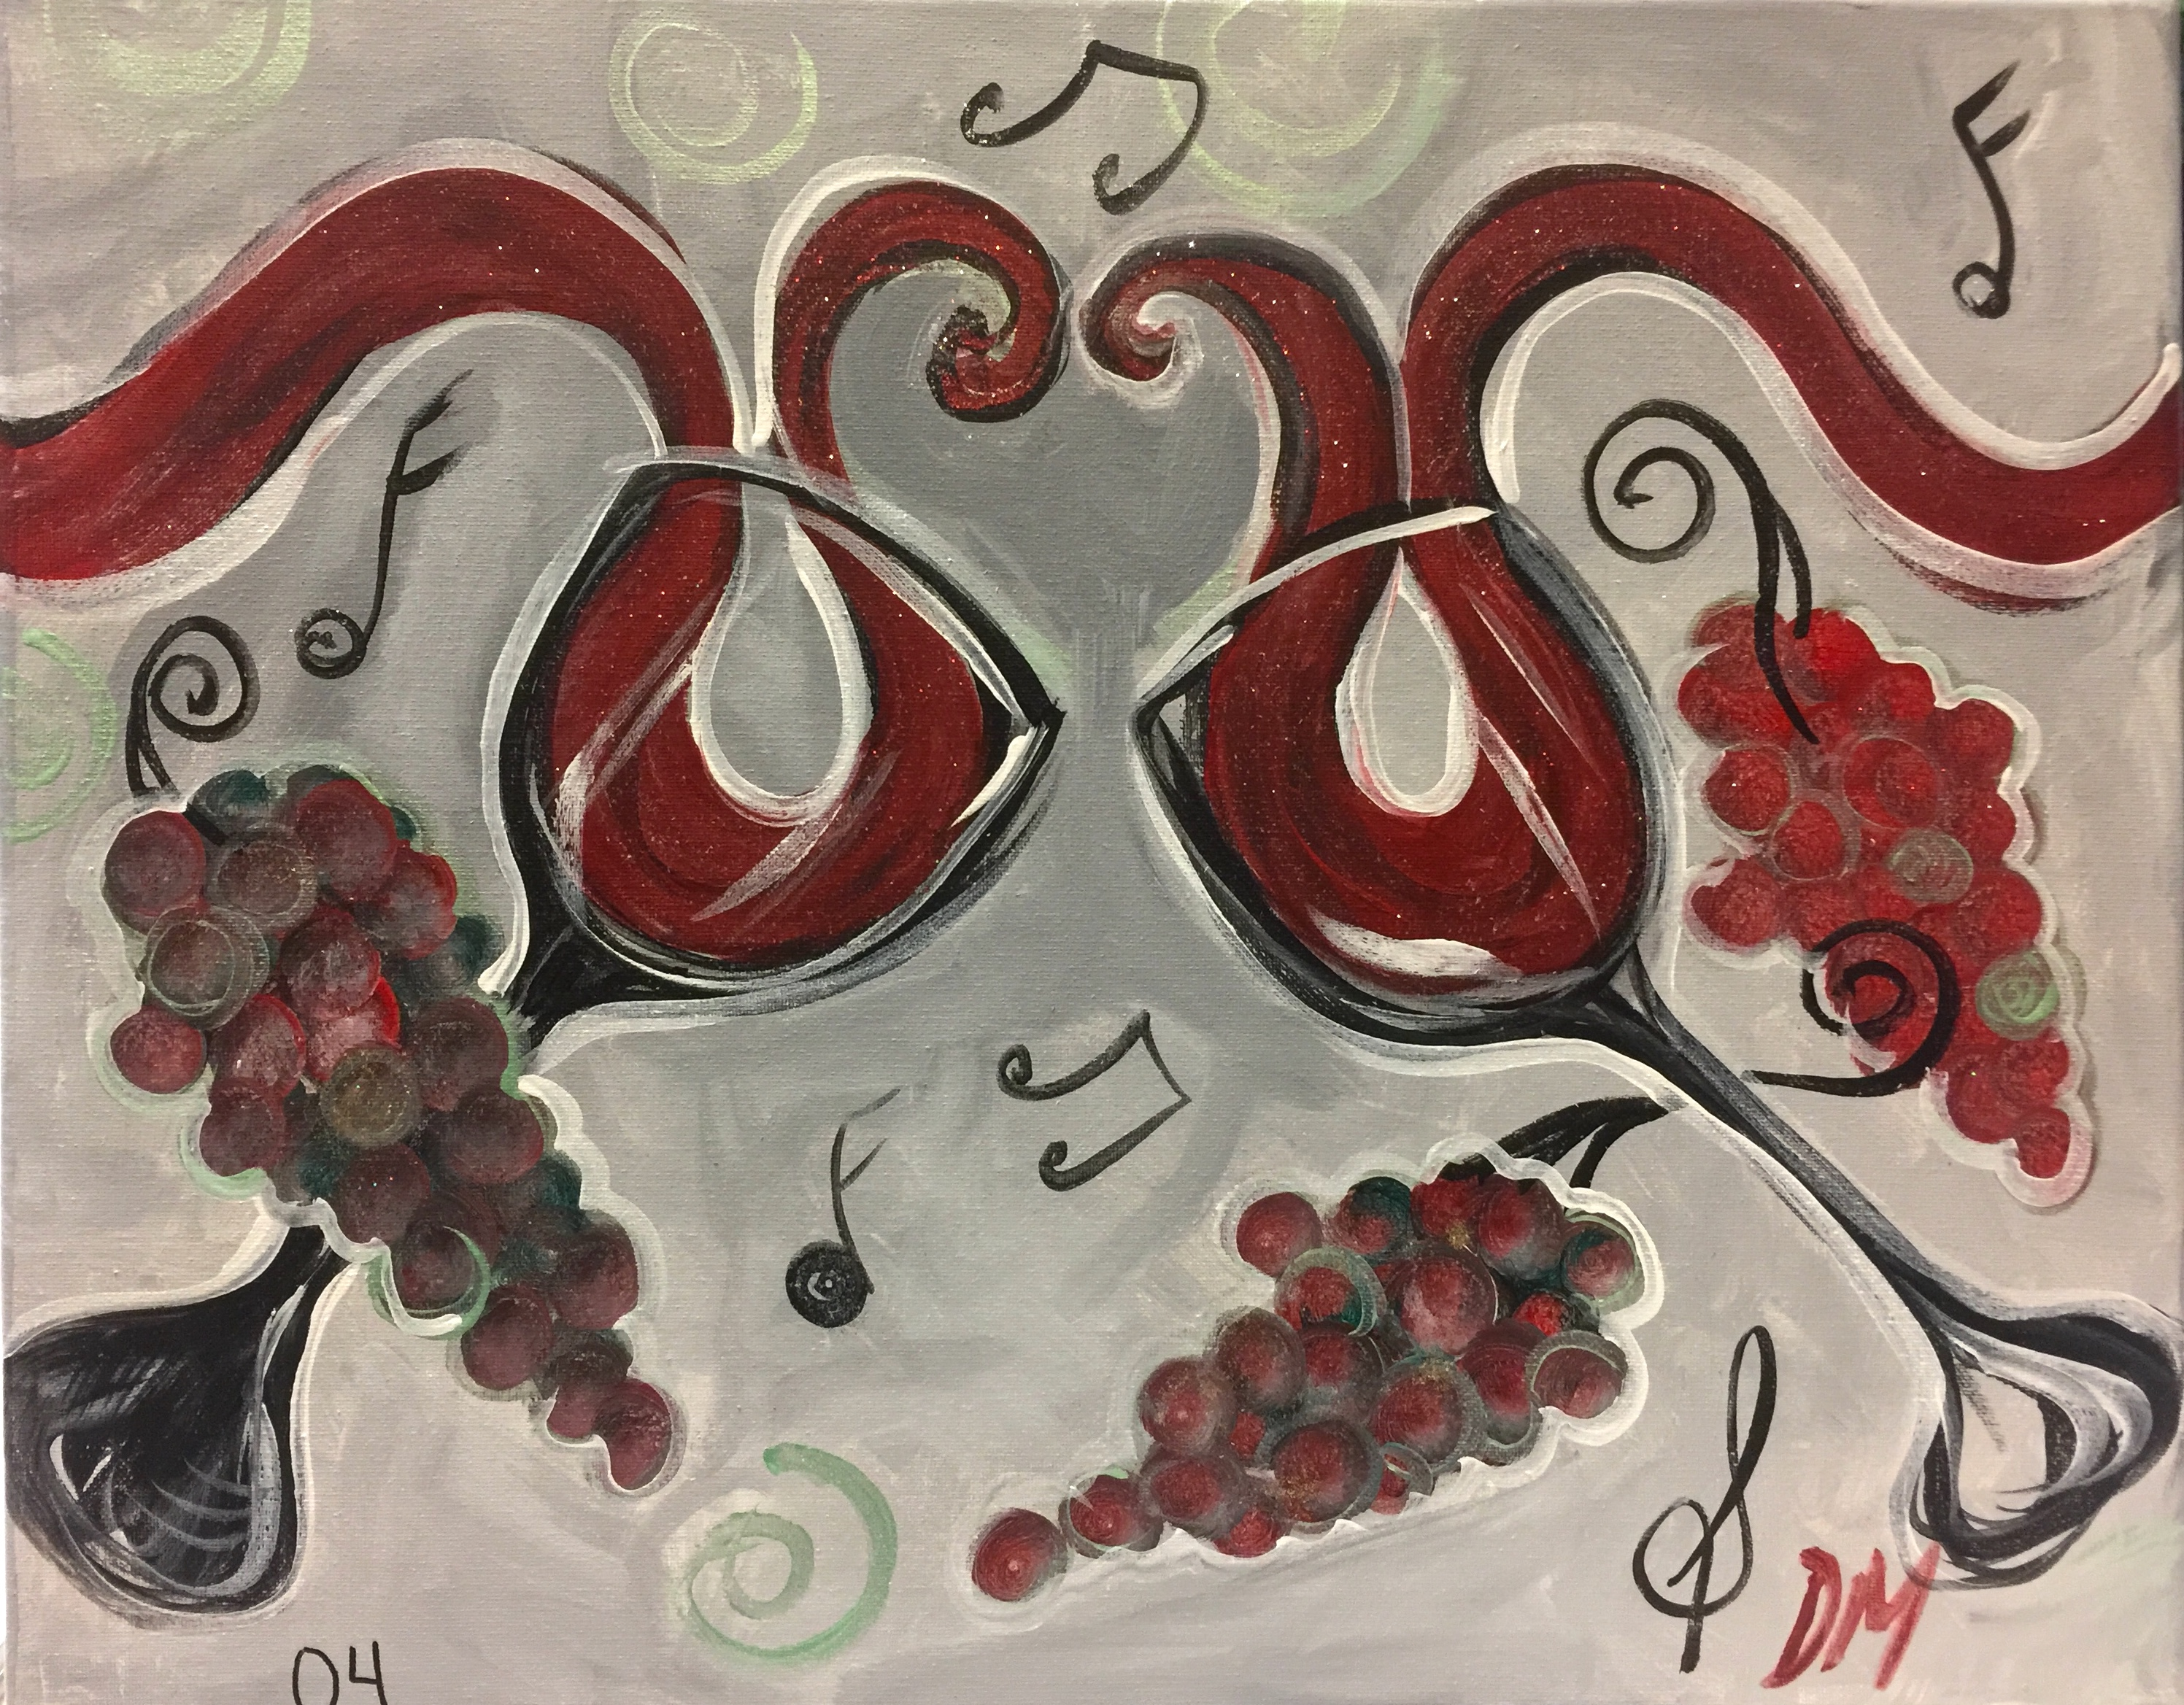 04-Two glasses, gray and red